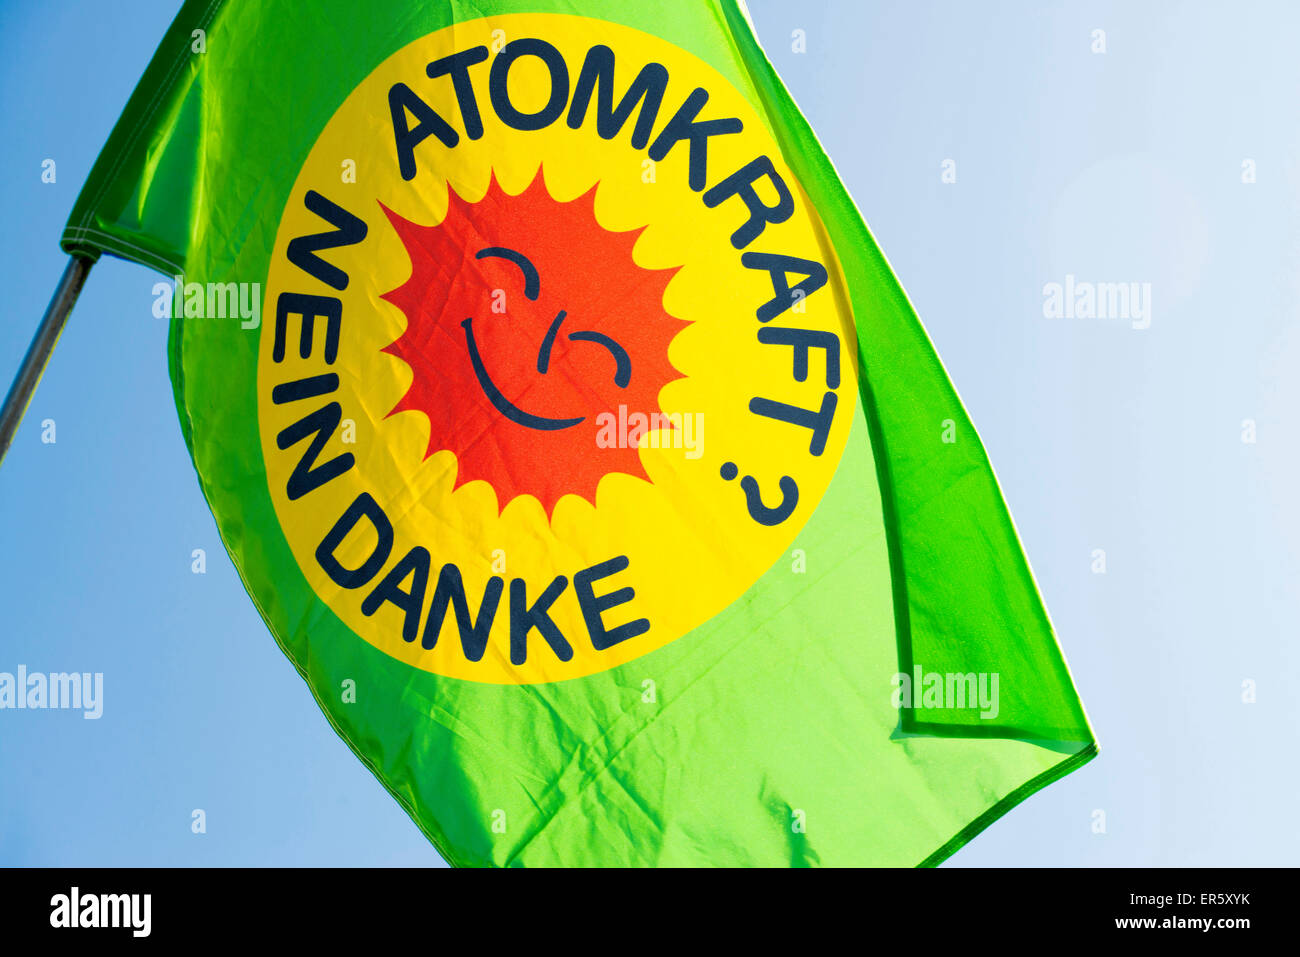 Demonstration against nuclear power in front of the atomic power plant Fessenheim, Fessenheim, Alsace, France - Stock Image